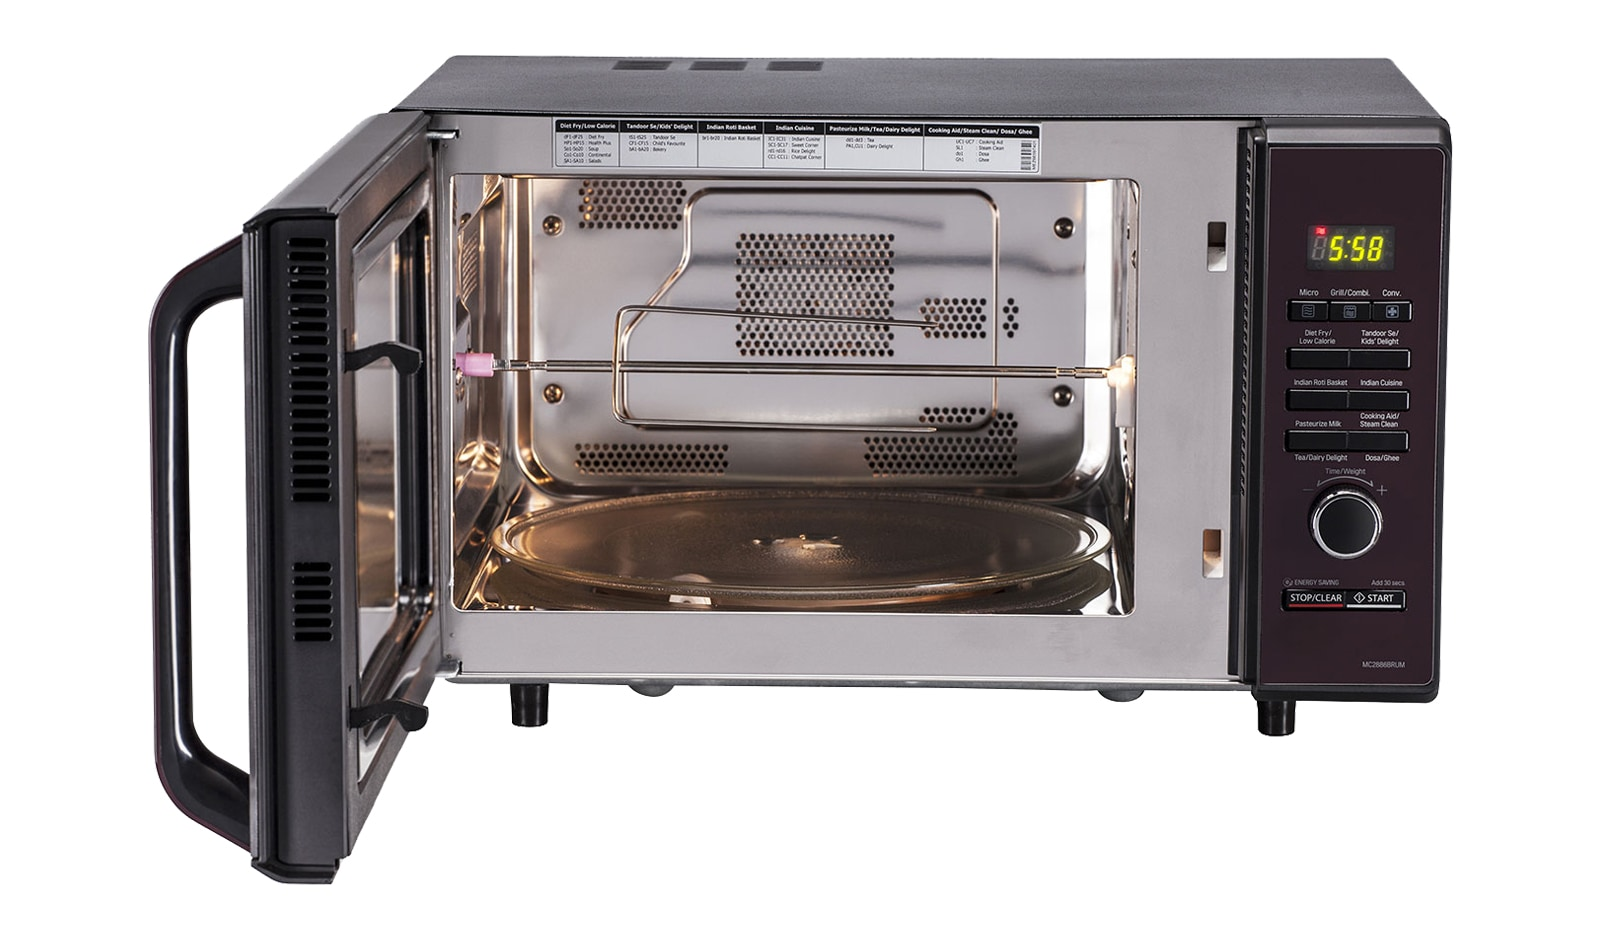 Gambar Oven Gas Lg Mc2886brum Convection Microwave Oven Lg India